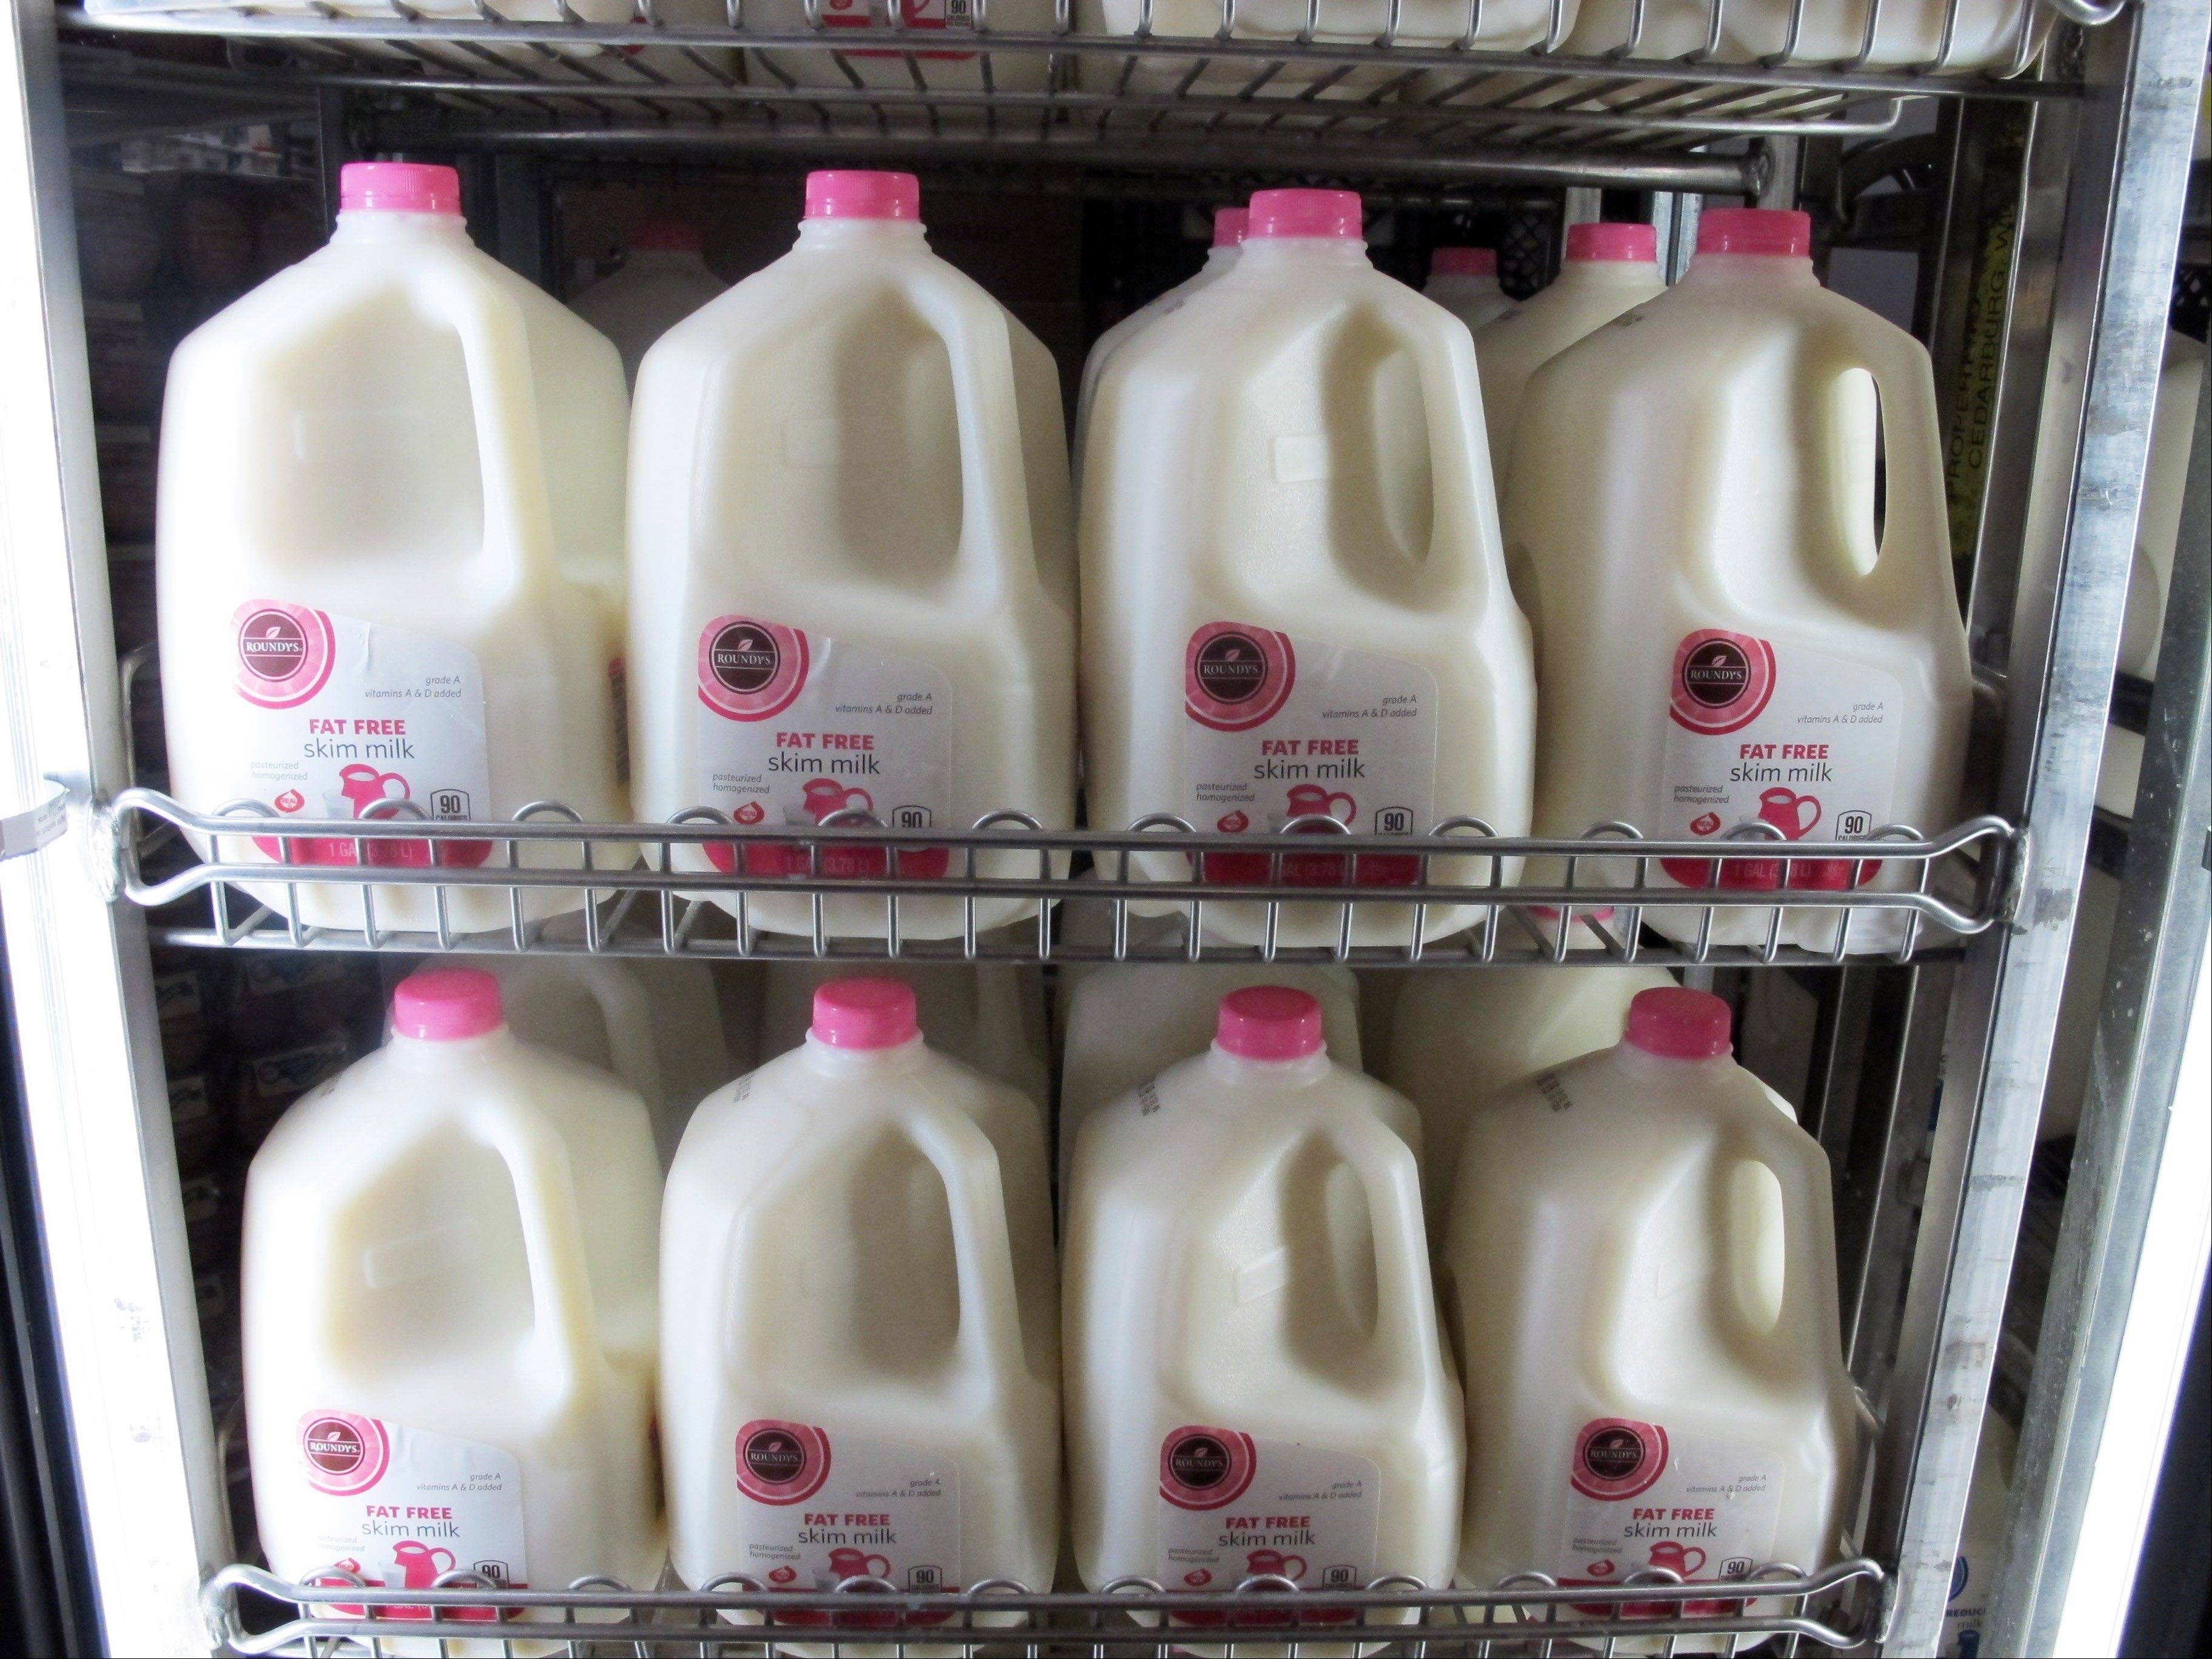 As the nation inches toward the economic ìfiscal cliff,î anxiety is growing in farm country about a separate looming deadline, one that reaches into the dairy industry and, indirectly, into the household budgets of consumers who buy milk and cheese.